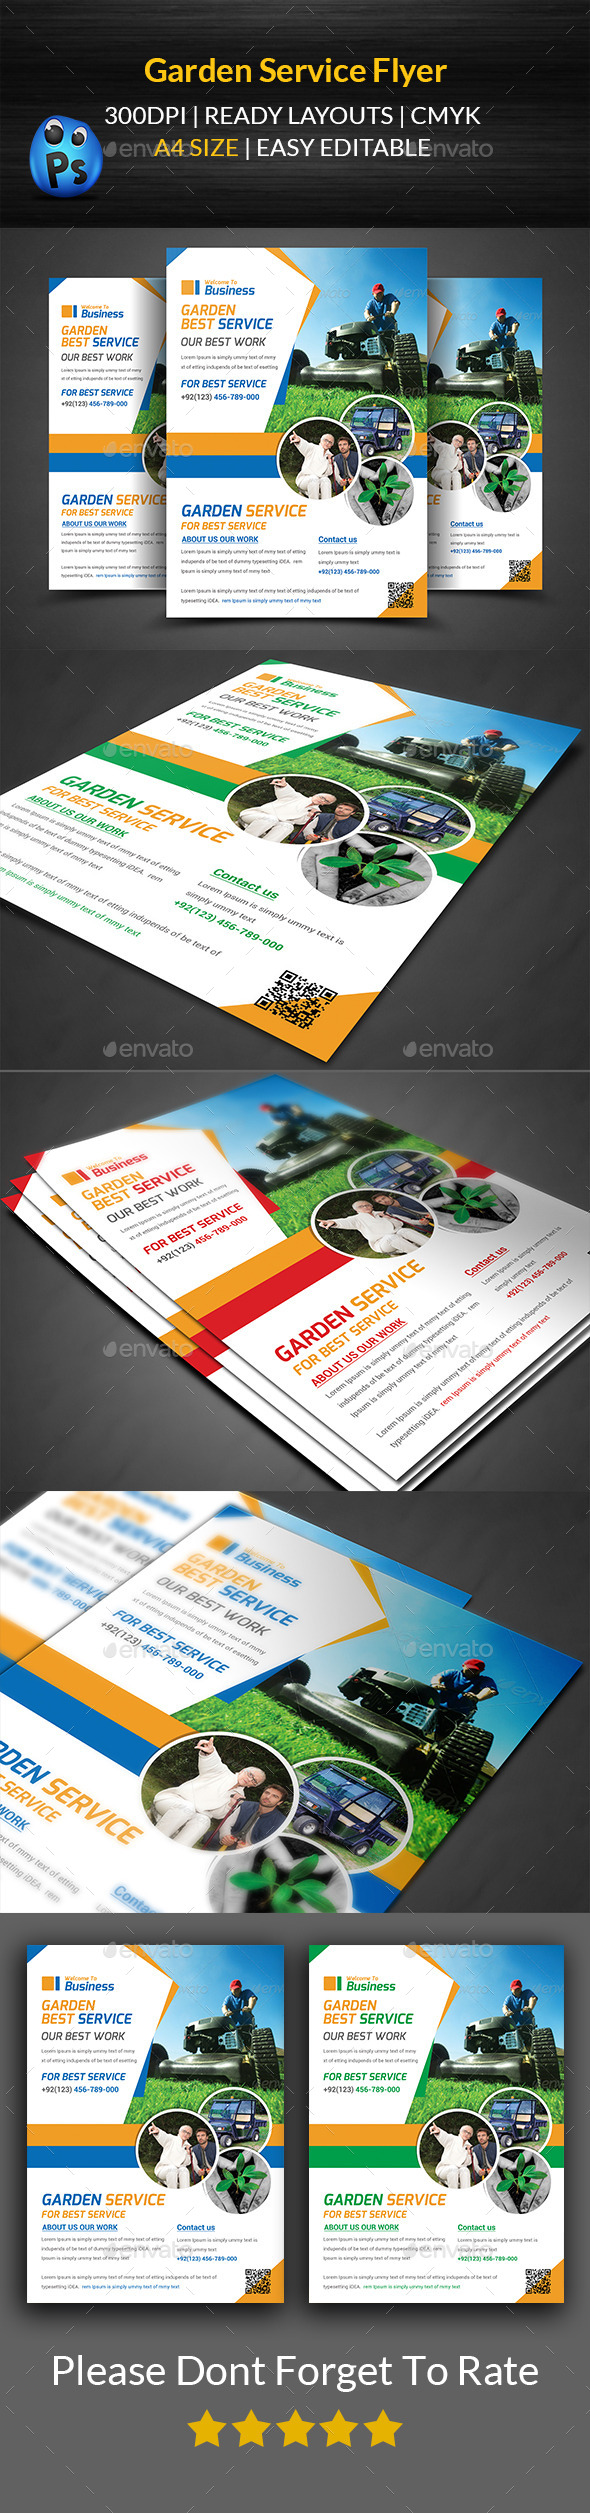 Garden Services Flyer Template  - Corporate Flyers